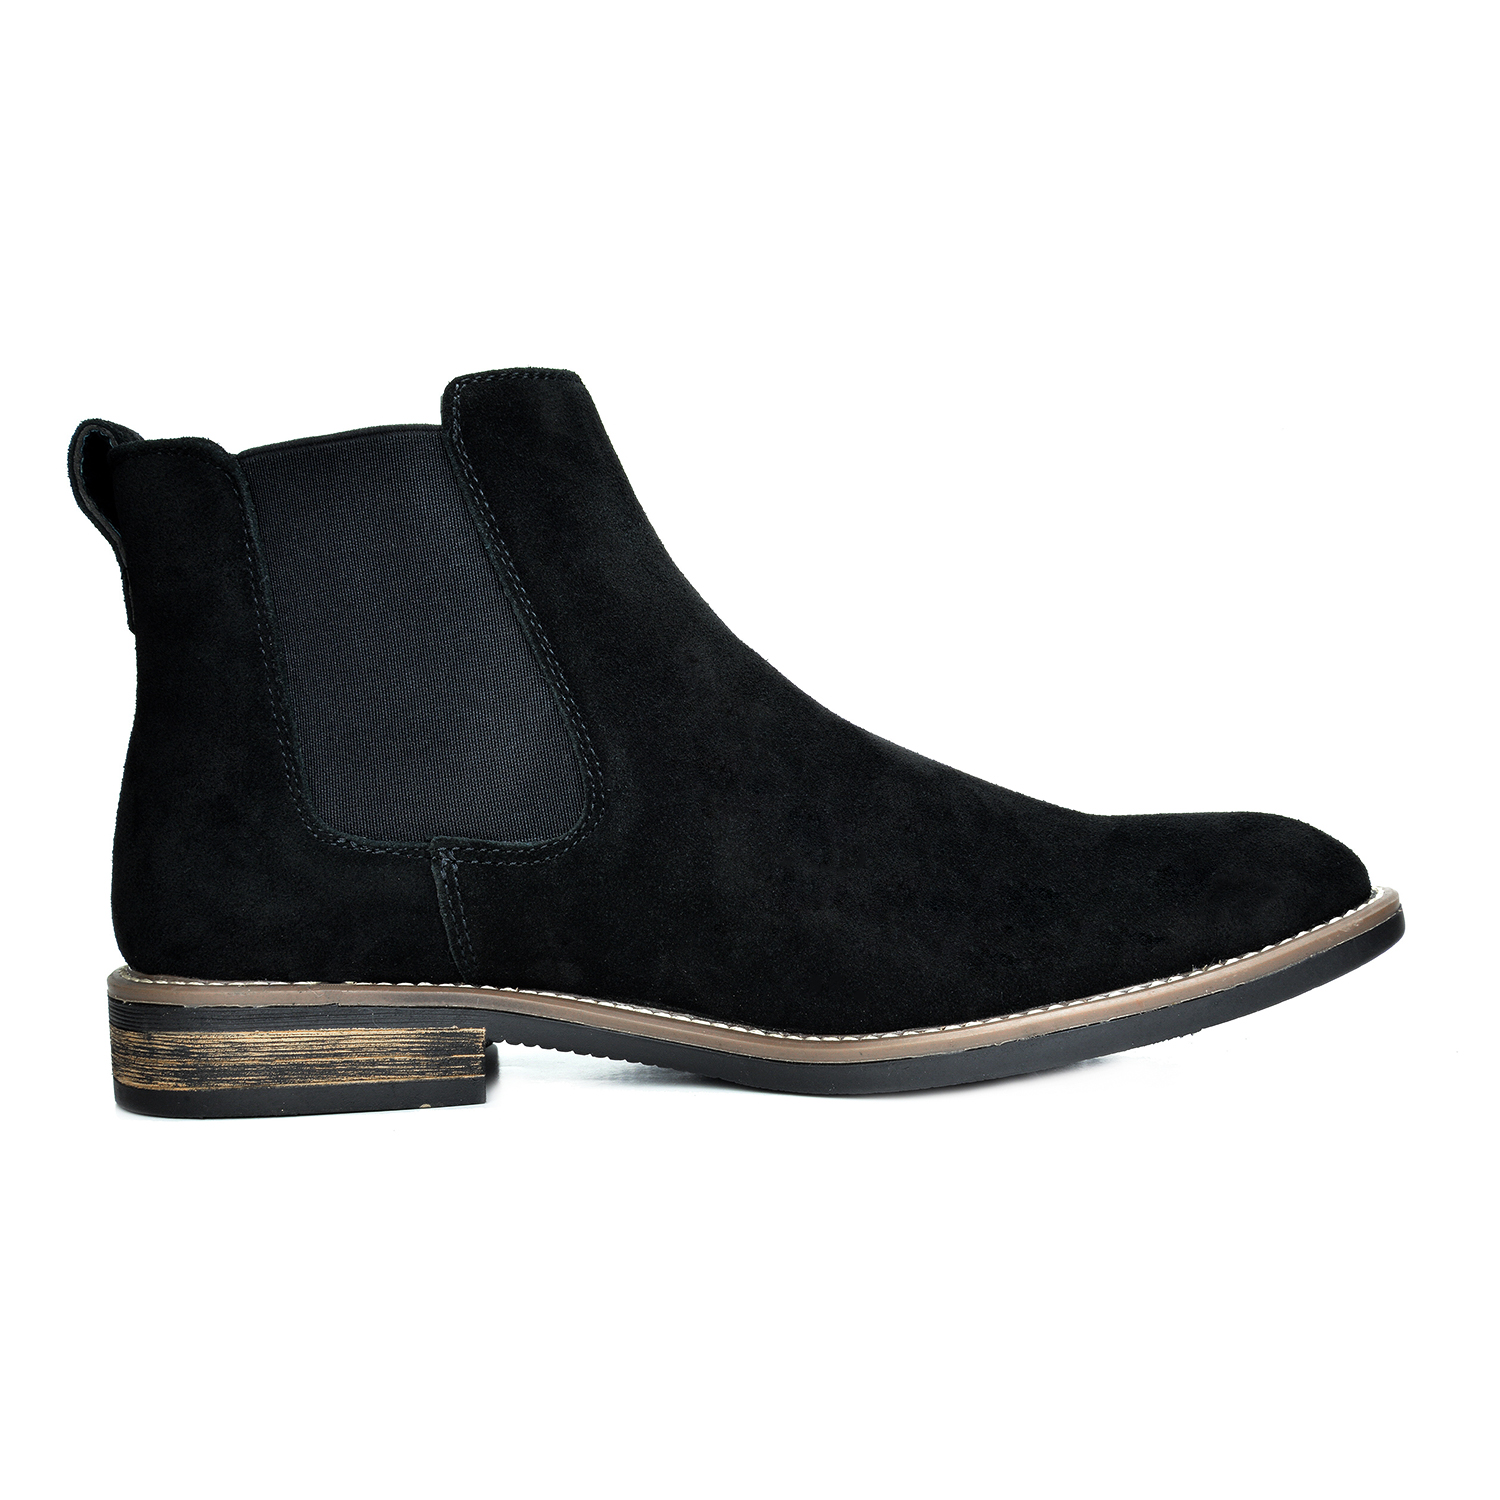 b29672fe139b2 BRUNO MARC Men URBAN Suede Leather Chelsea Chukka Dress Ankle Boots ...